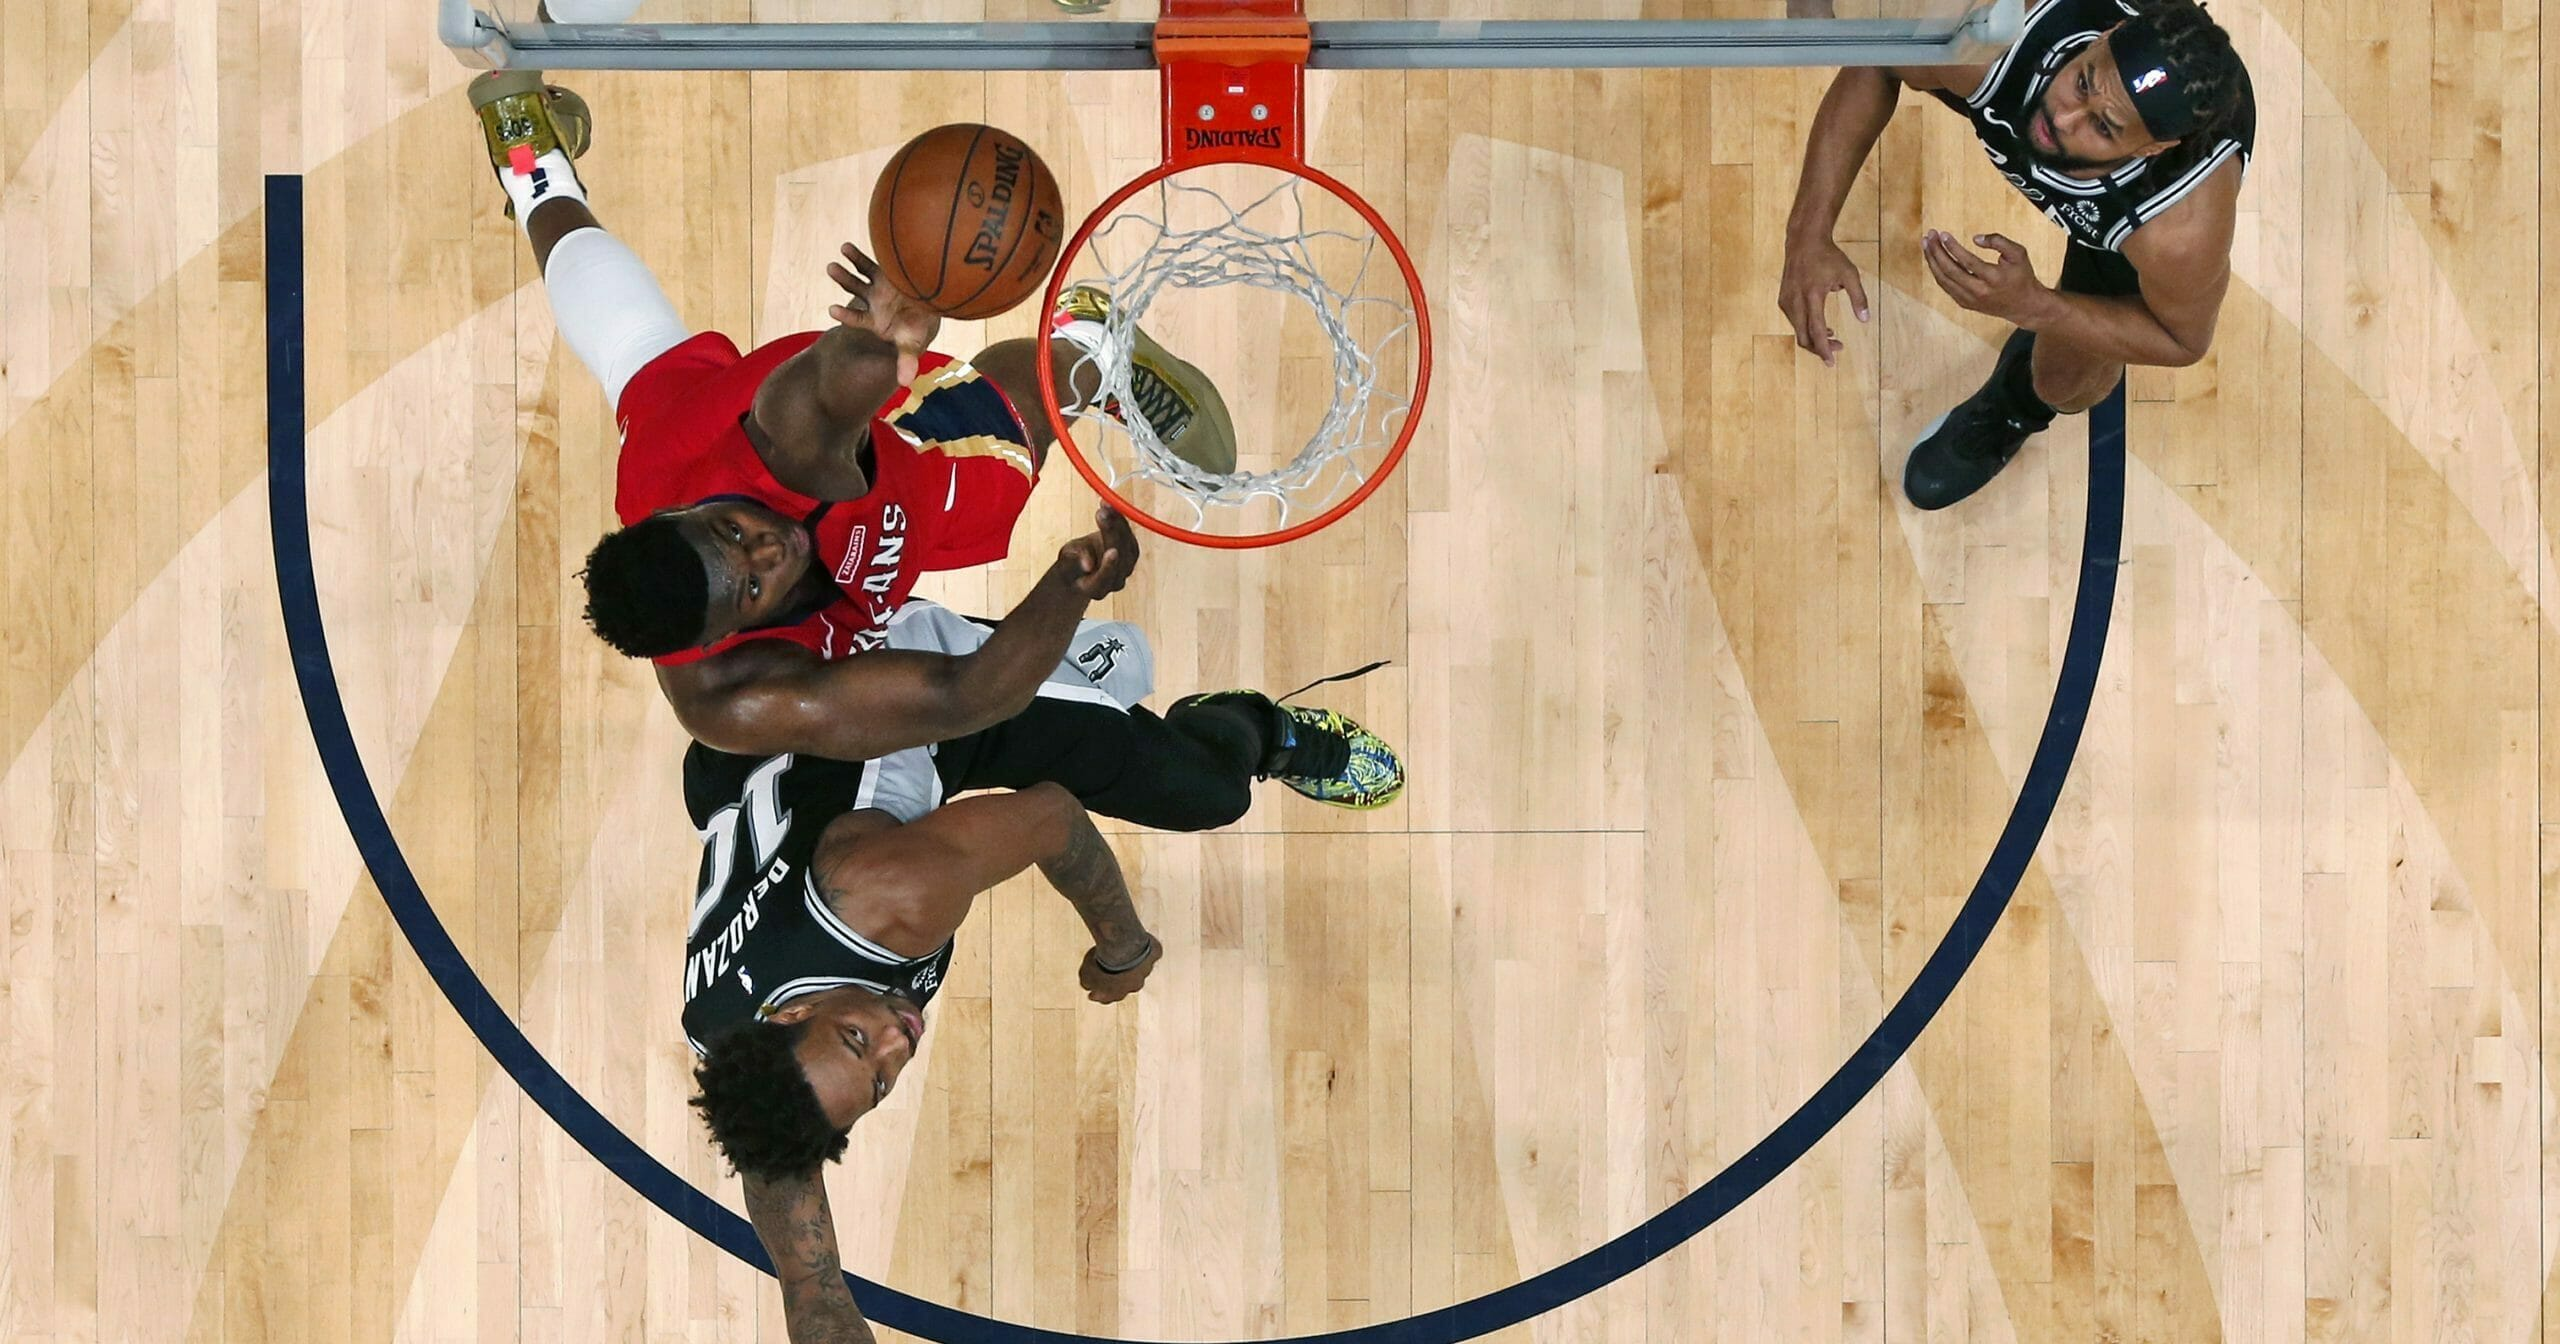 New Orleans Pelicans forward Zion Williamson goes to the basket against San Antonio Spurs forward DeMar DeRozan (10) in the second half of an NBA basketball game in New Orleans on Jan. 22, 2020.